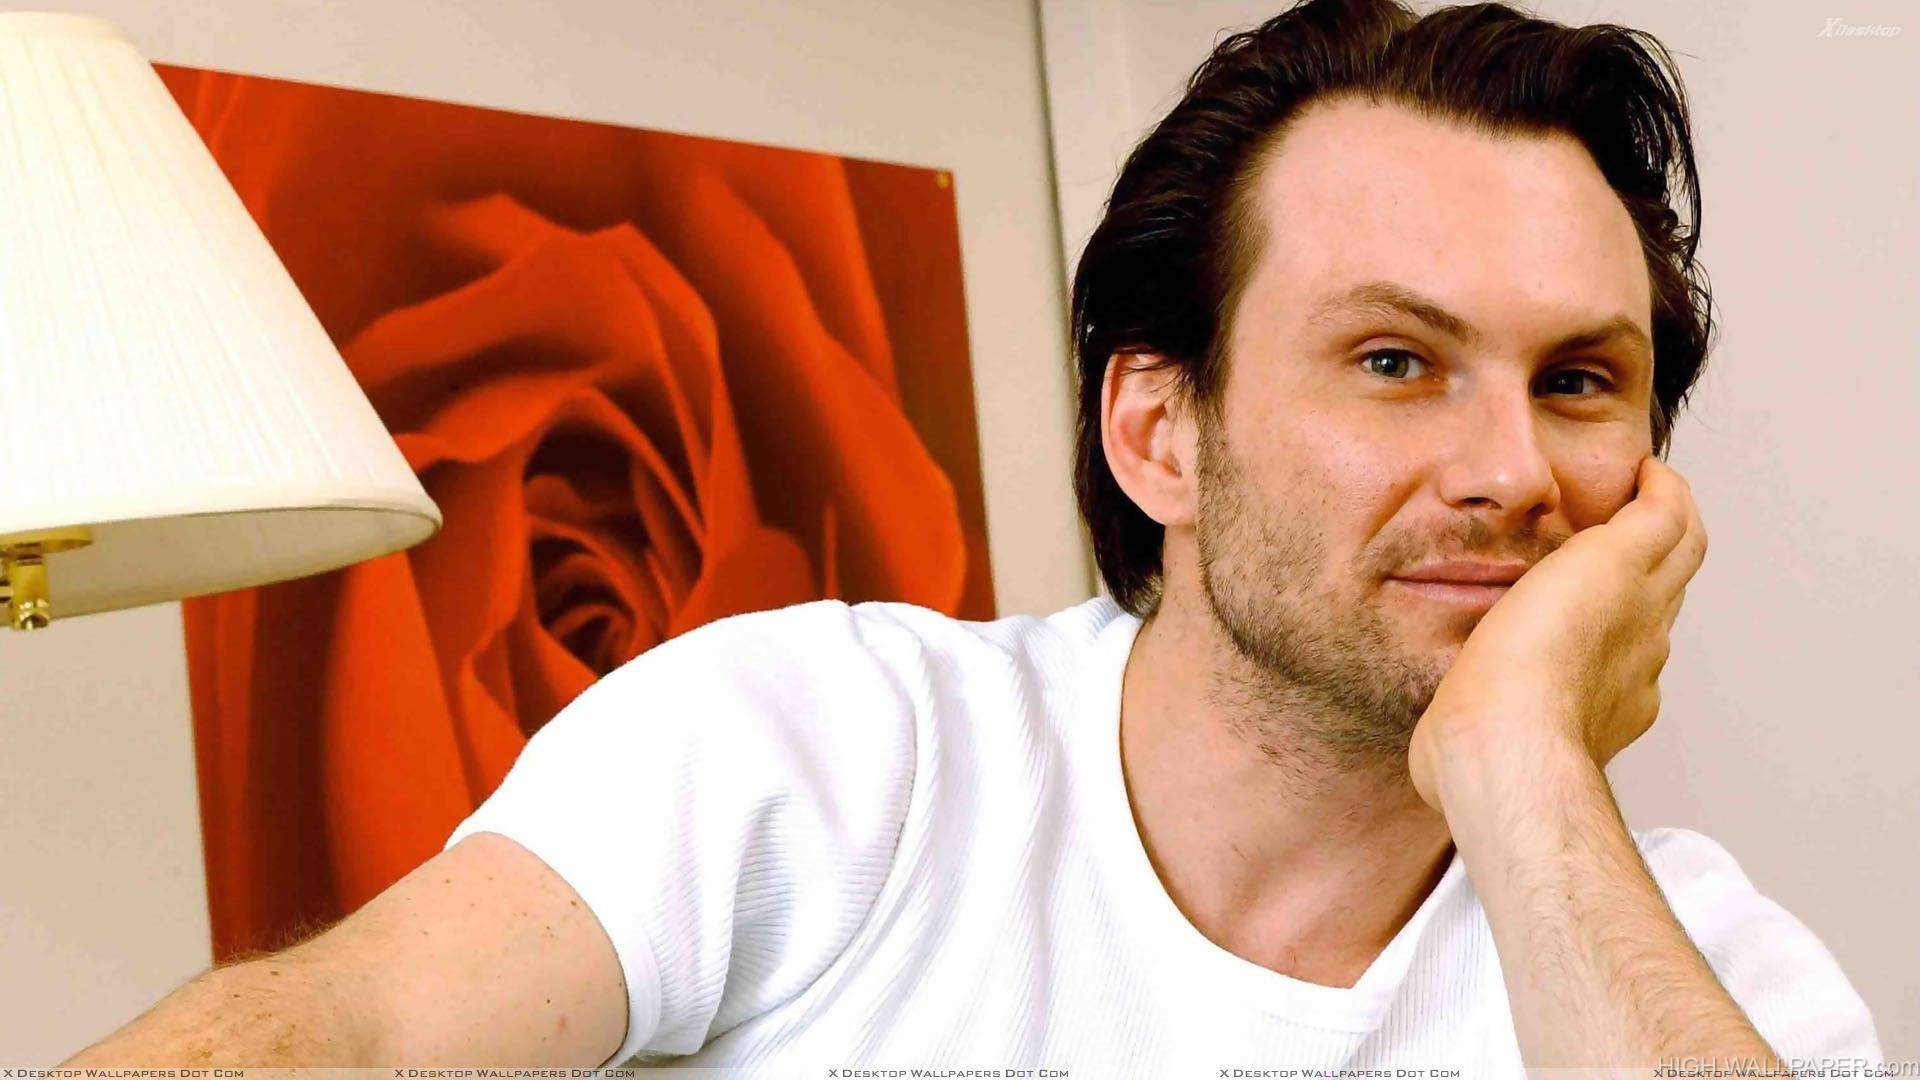 Christian Slater Looking At Camera In White T Shirt